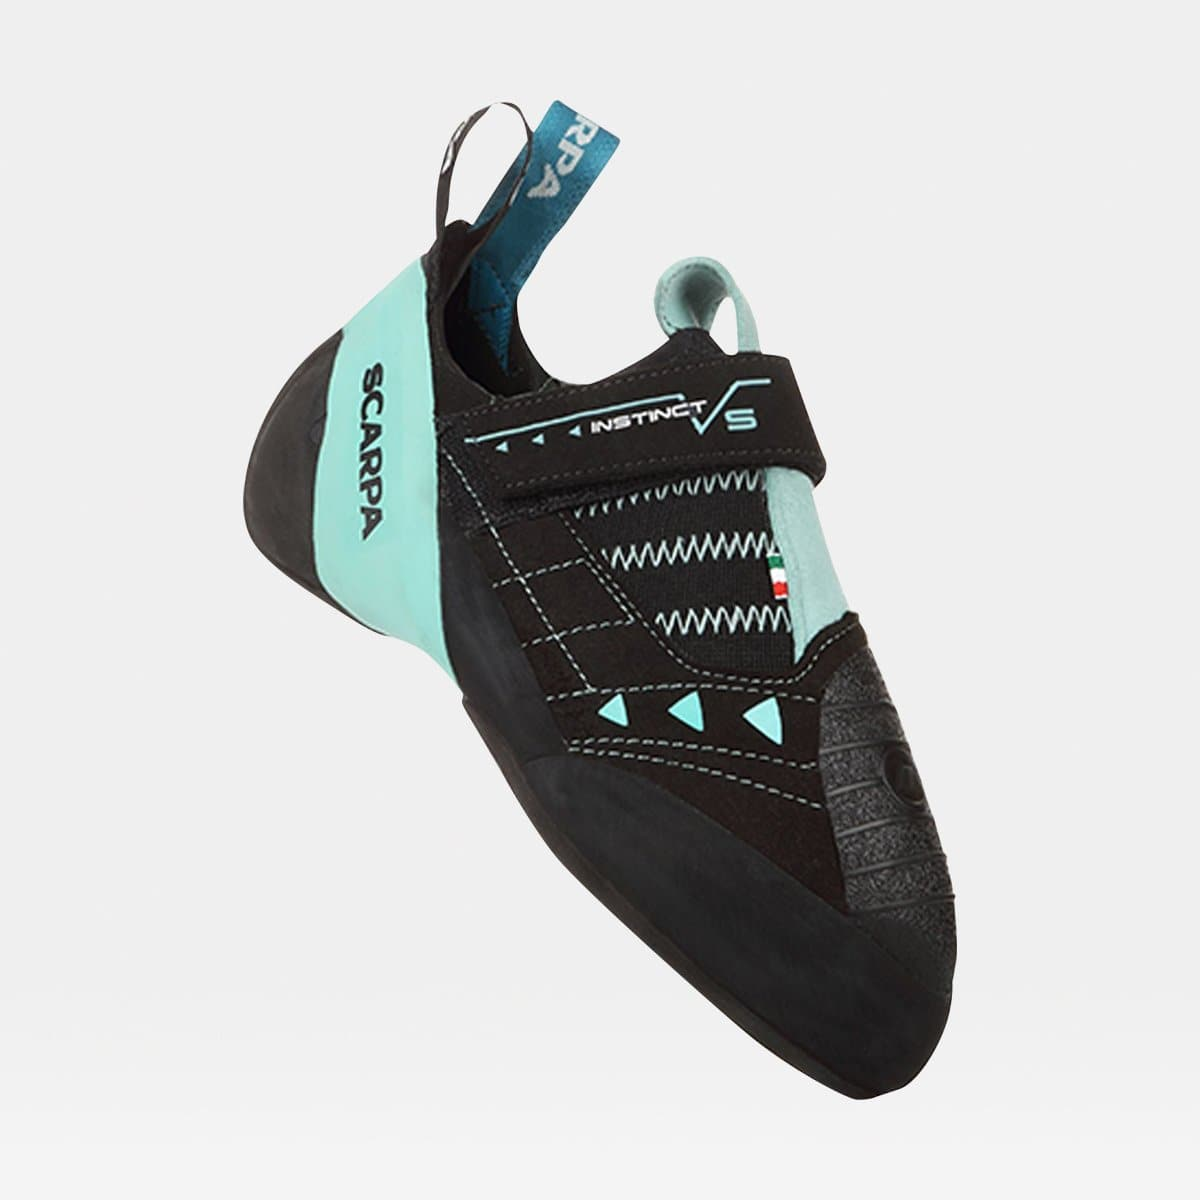 Scarpa Chaussons Escalade Instinct Vsr Homme